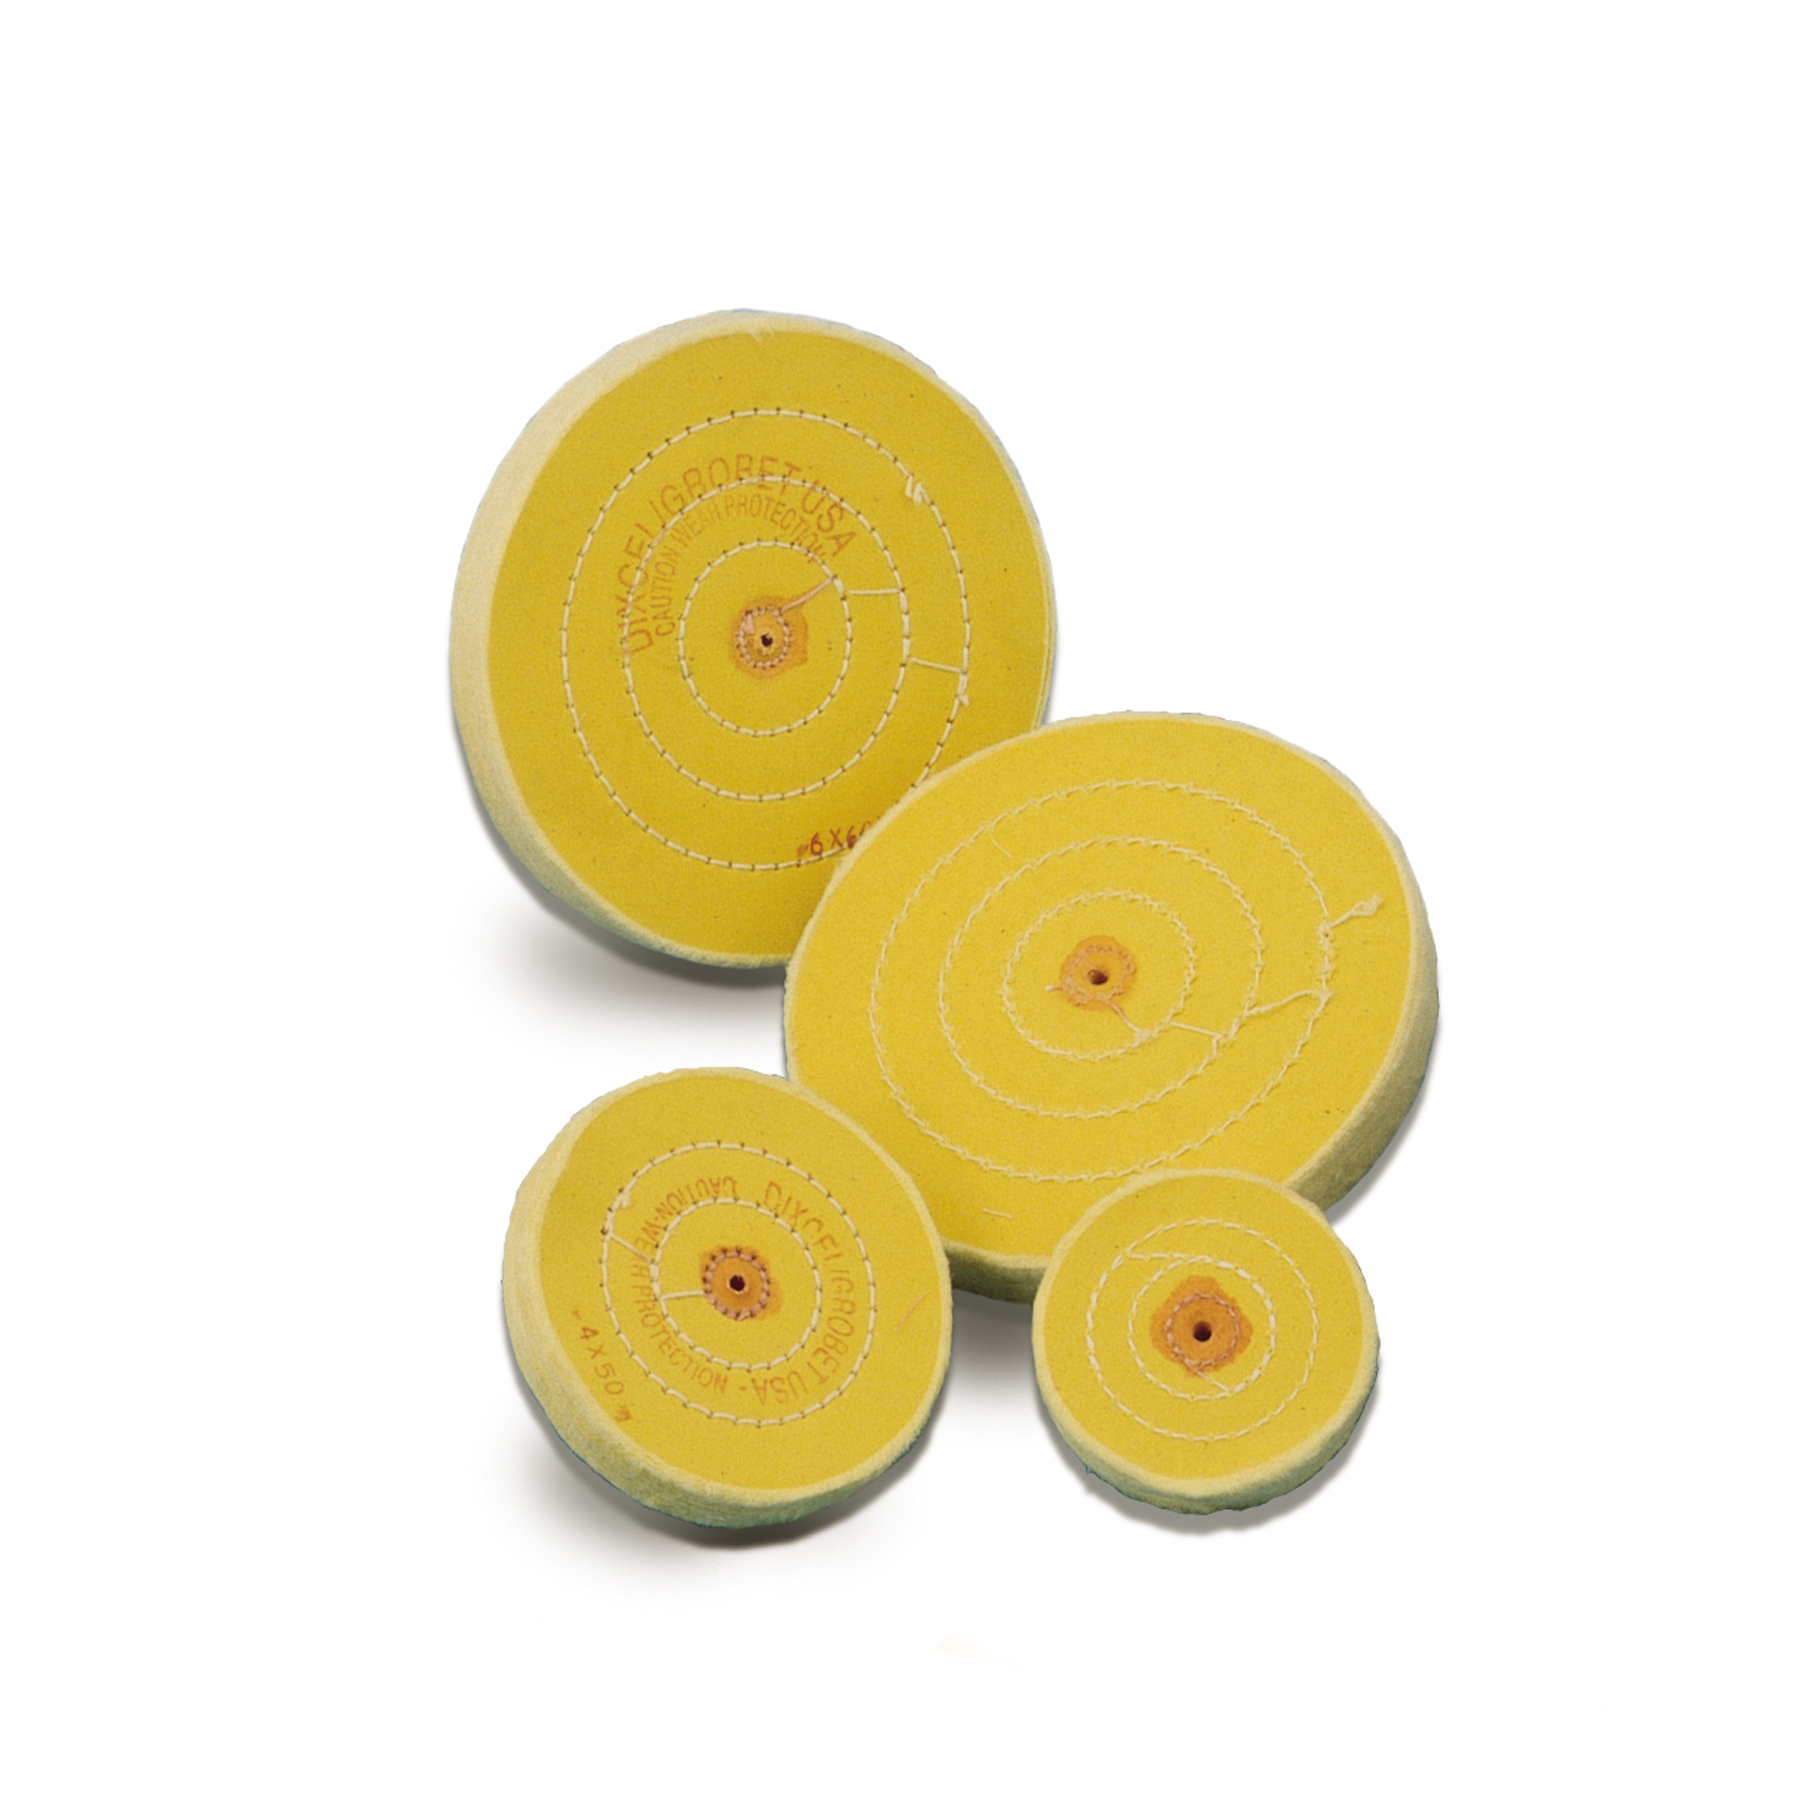 Yellow Chemkote Buff, Shellac Center, 5